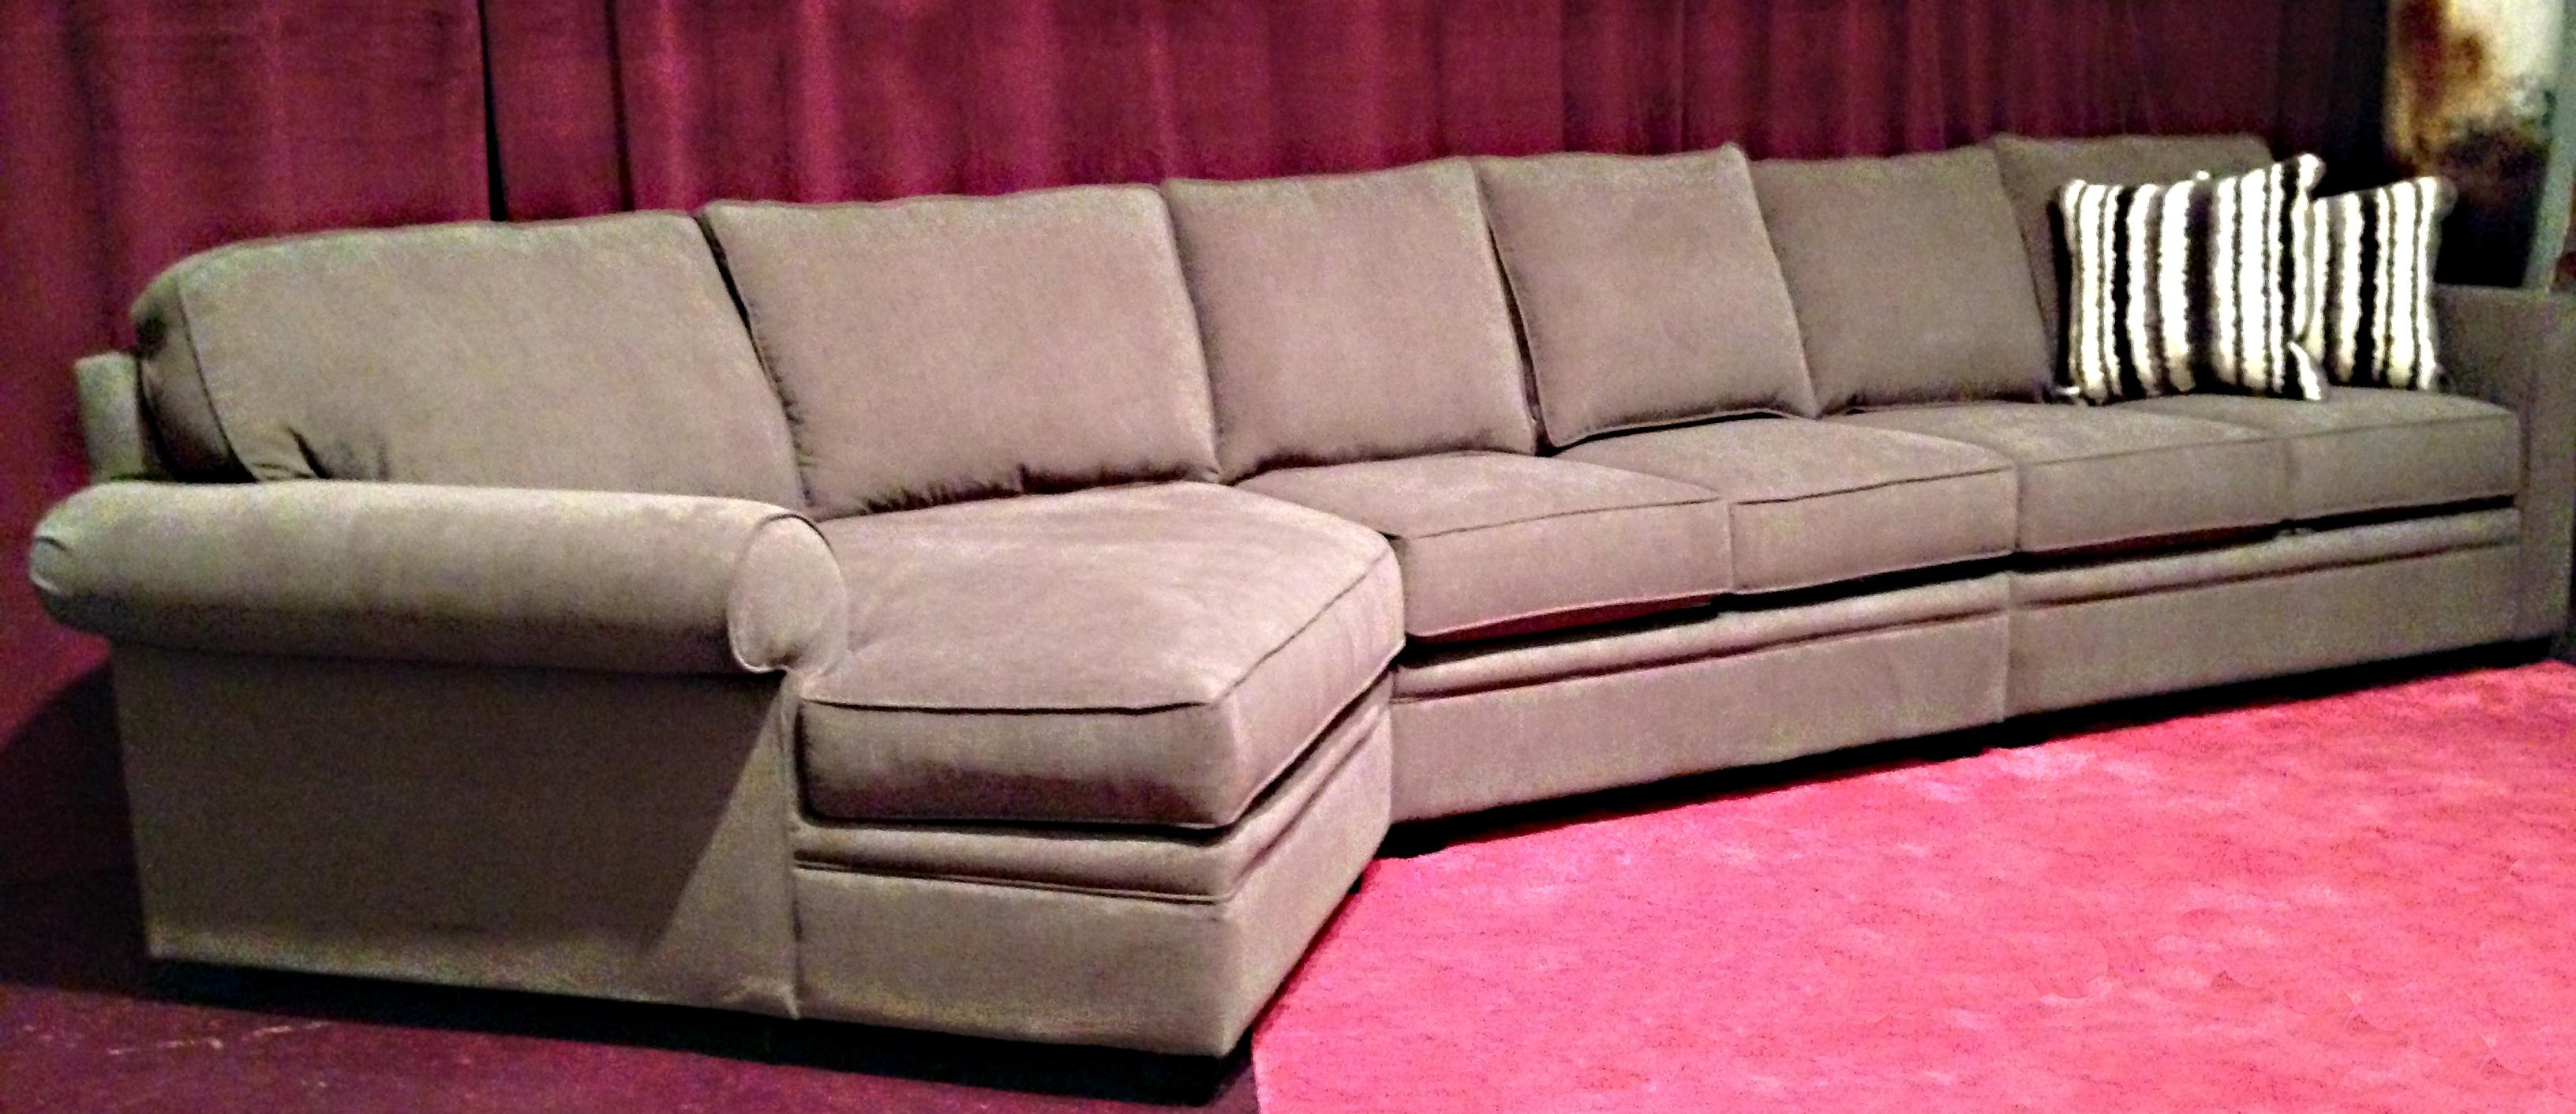 Sofas Center : Sofas Center Sofa With Cuddler And Chaise Discount Inside Long Chaise Sofa (Image 18 of 20)